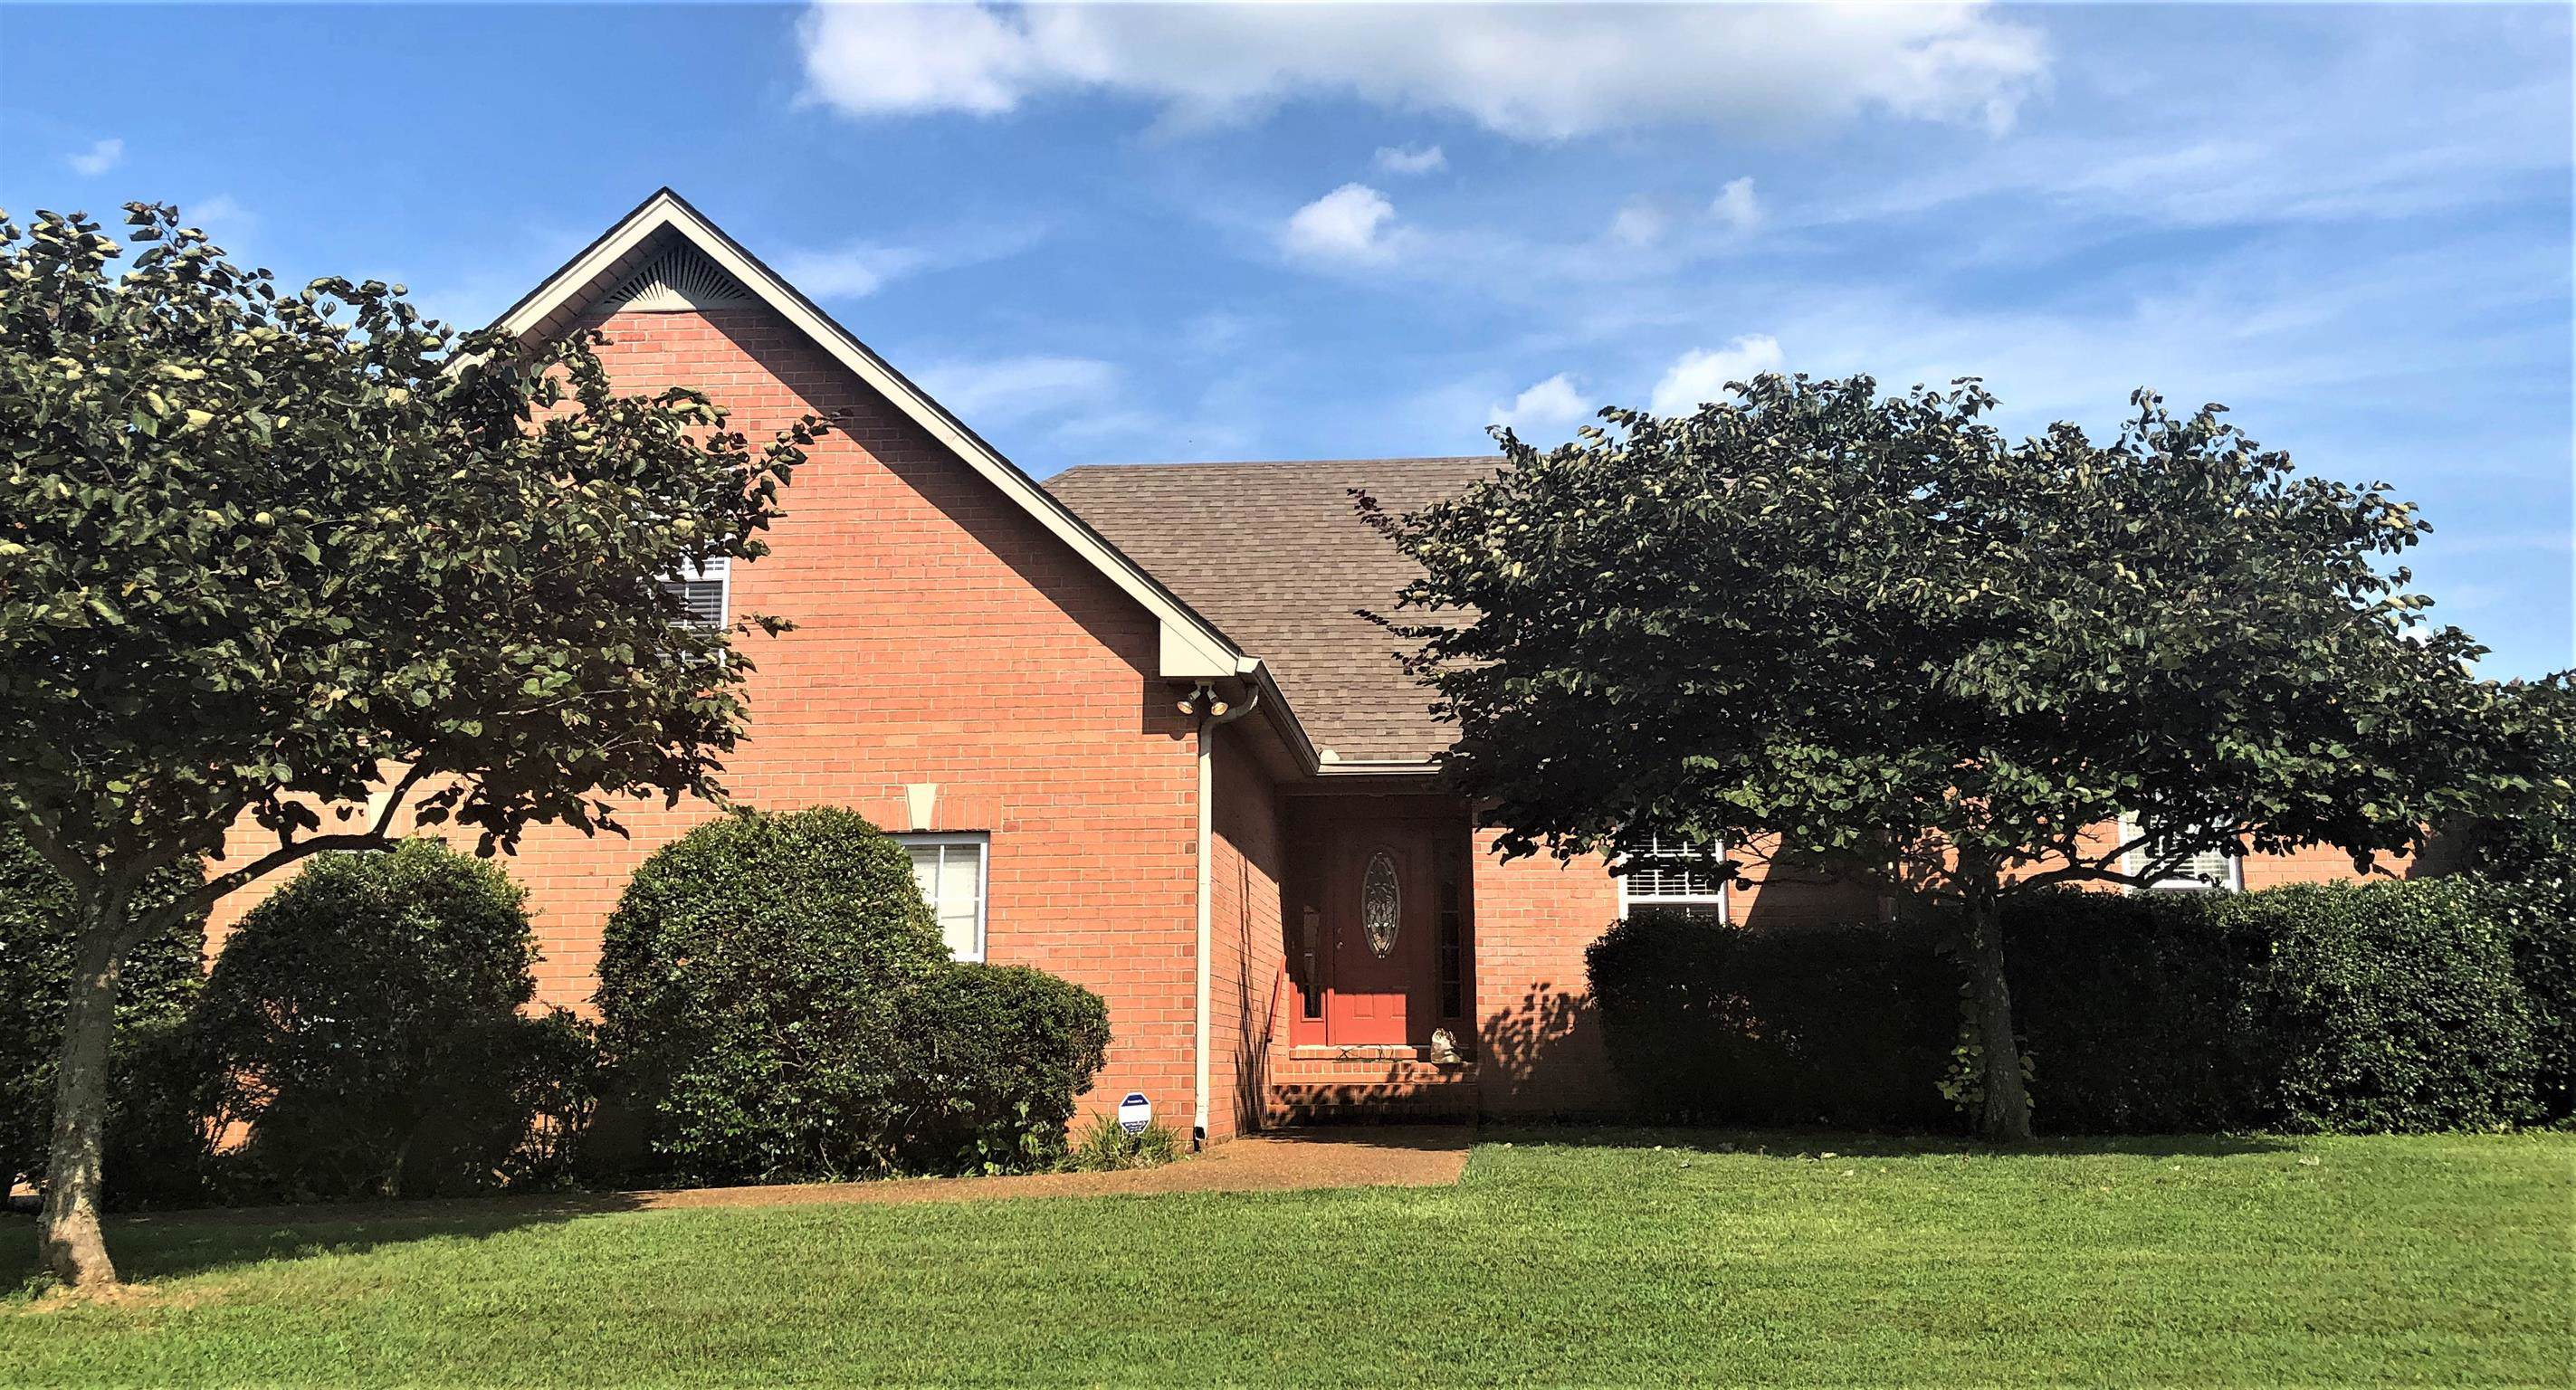 591 Hollerman Ln, Gallatin, TN 37066 (MLS #RTC2073139) :: The Milam Group at Fridrich & Clark Realty